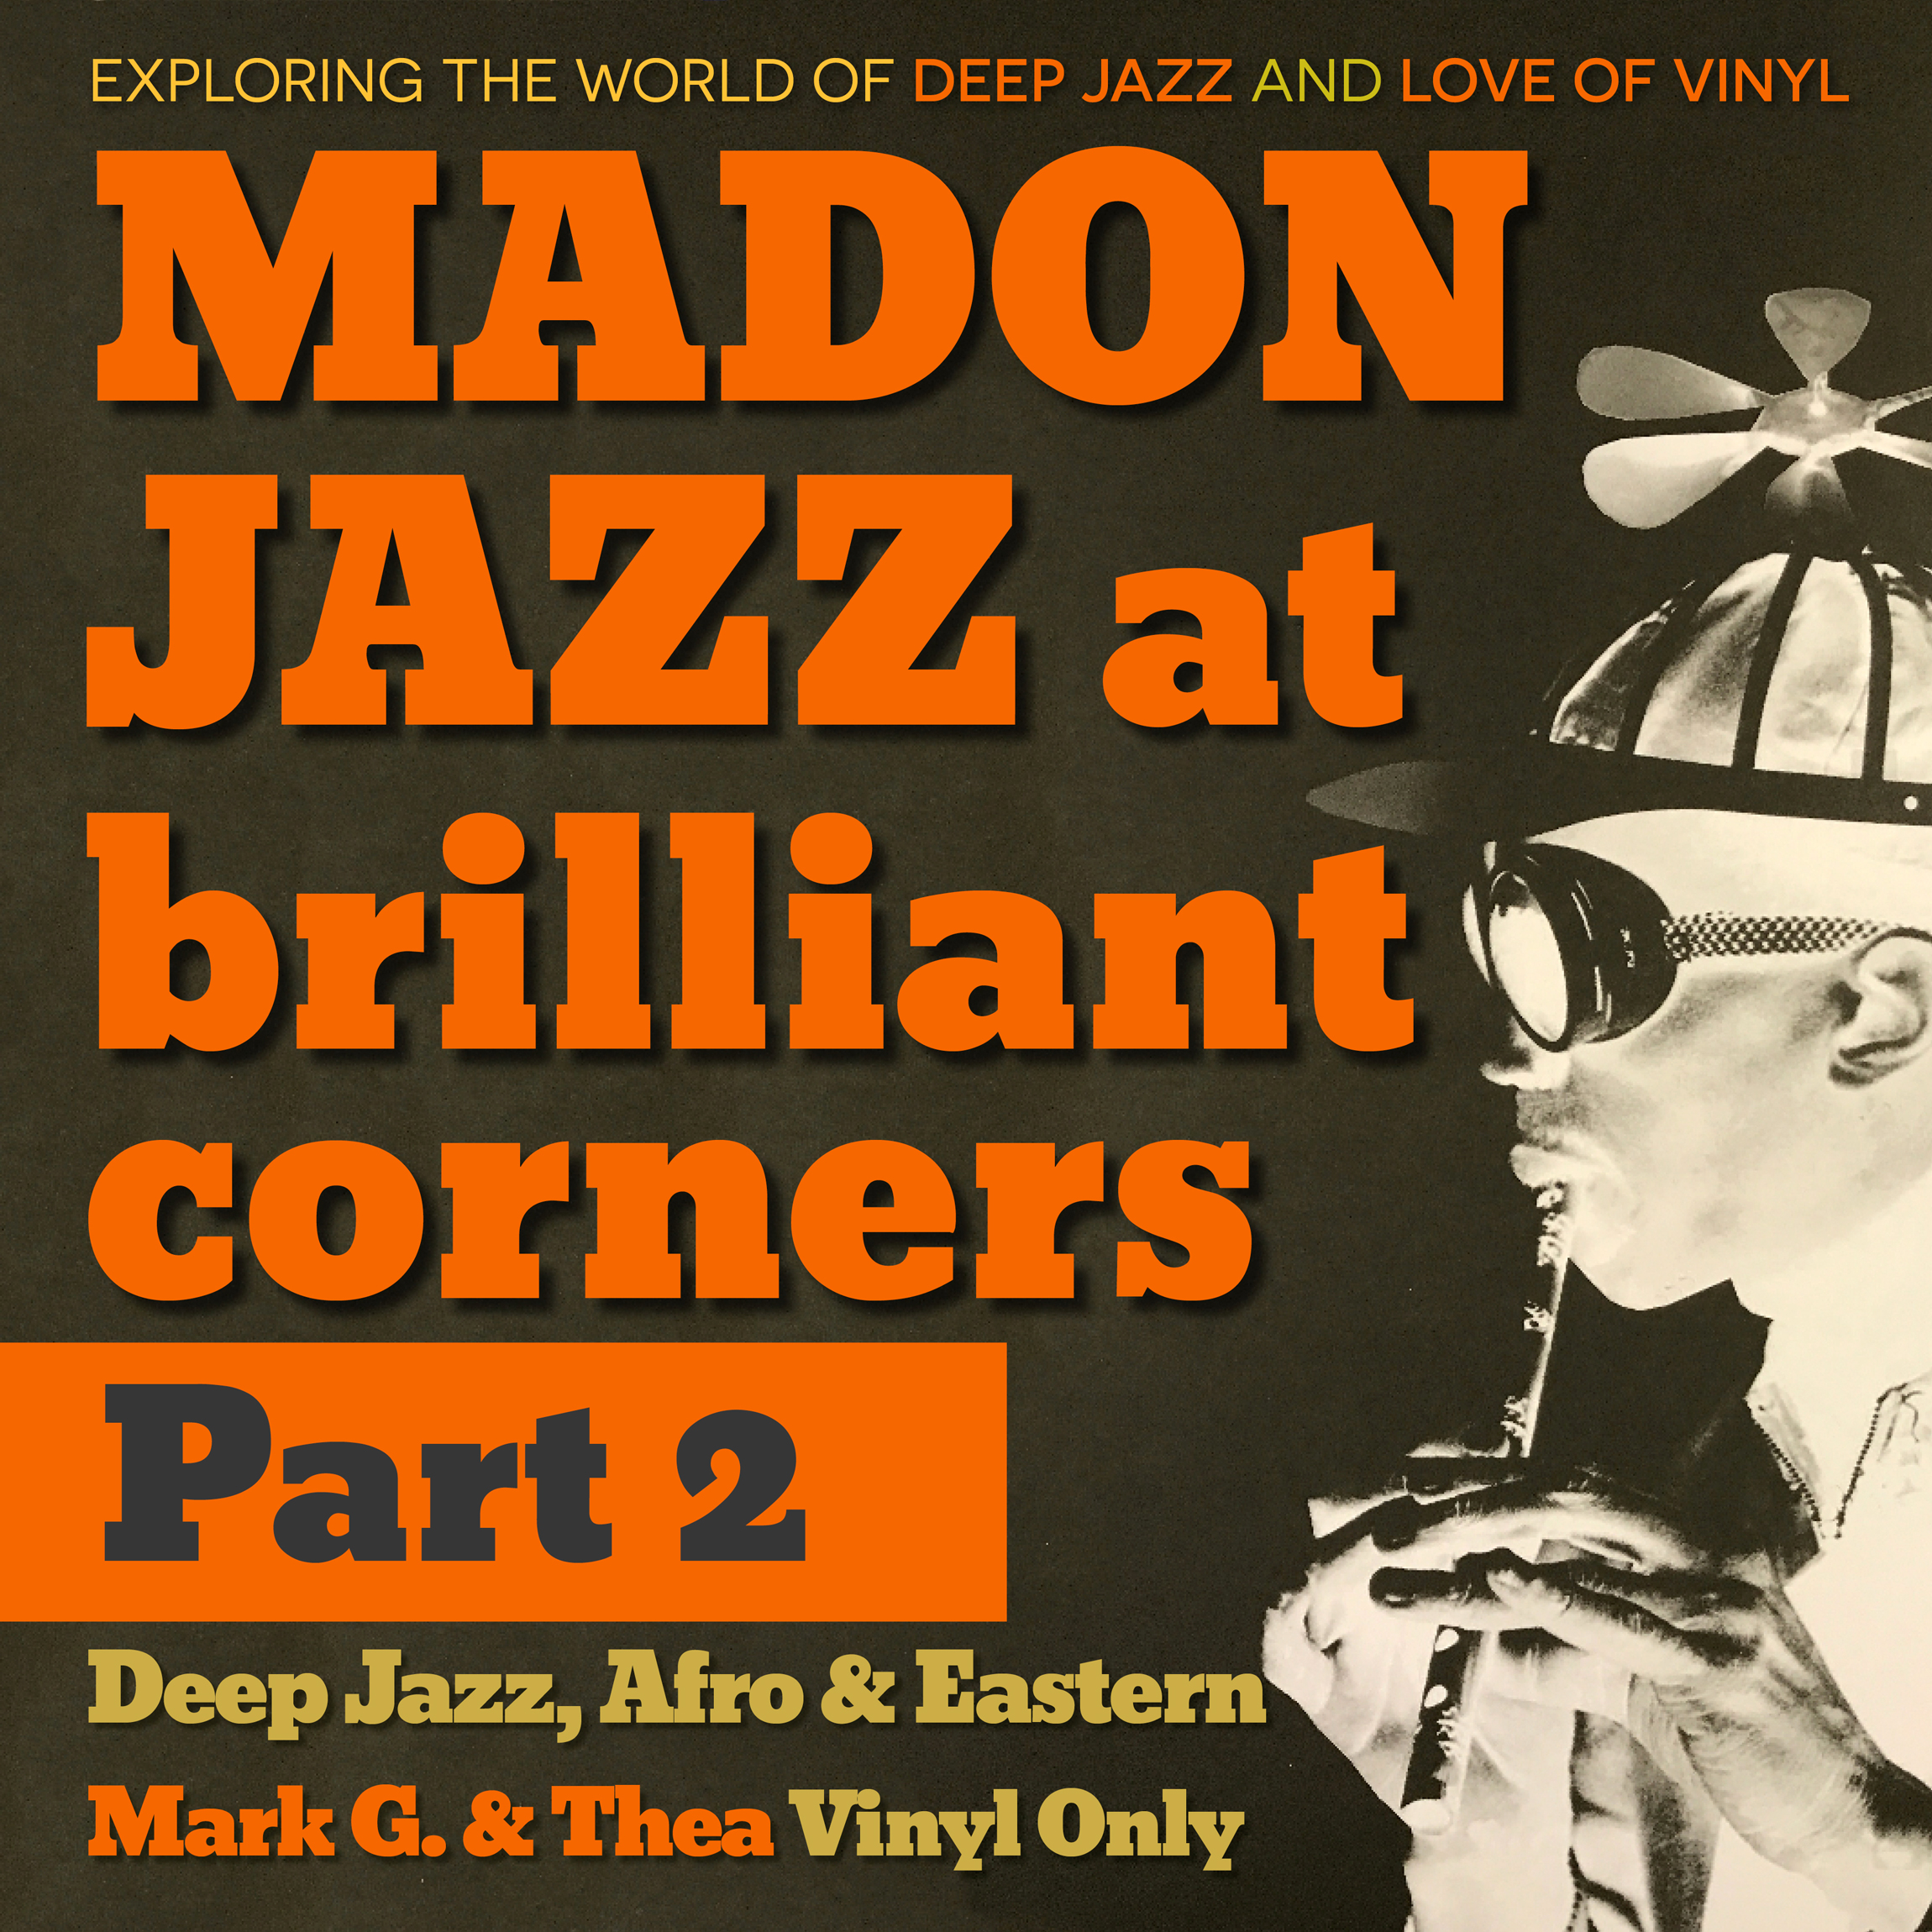 MADONJAZZ at Brilliant Corners, May 2017 - Pt 1: Deep Jazz, Afro & Eastern Jazz sessions